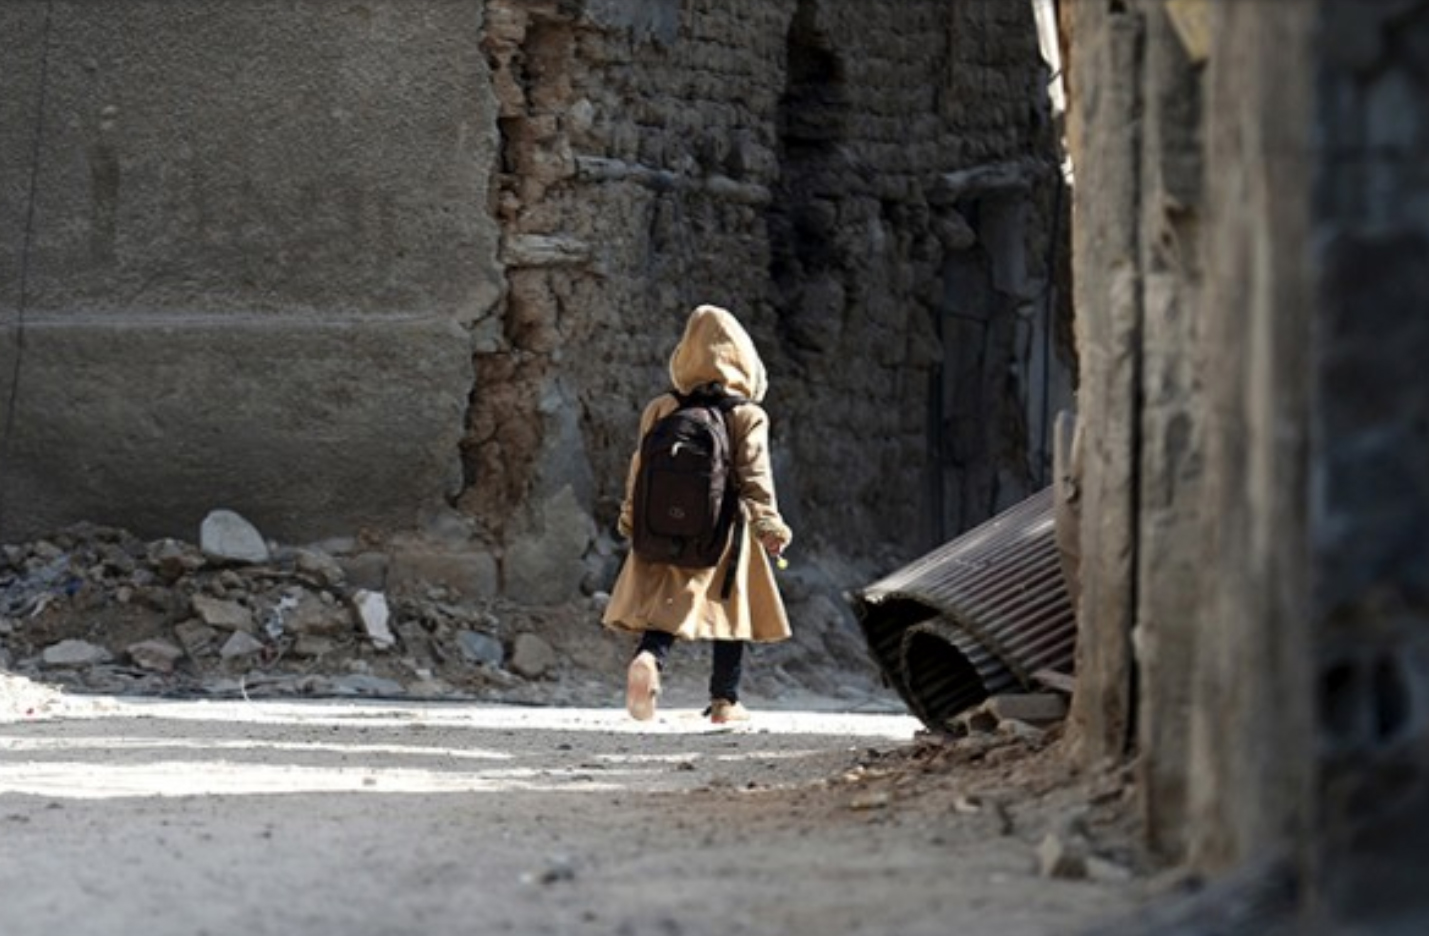 A child carries a school bag near damaged buildings in Harasta, in the eastern Damascus suburb of Ghouta, Syria January 30, 2016. REUTERS/Bassam Khabieh.